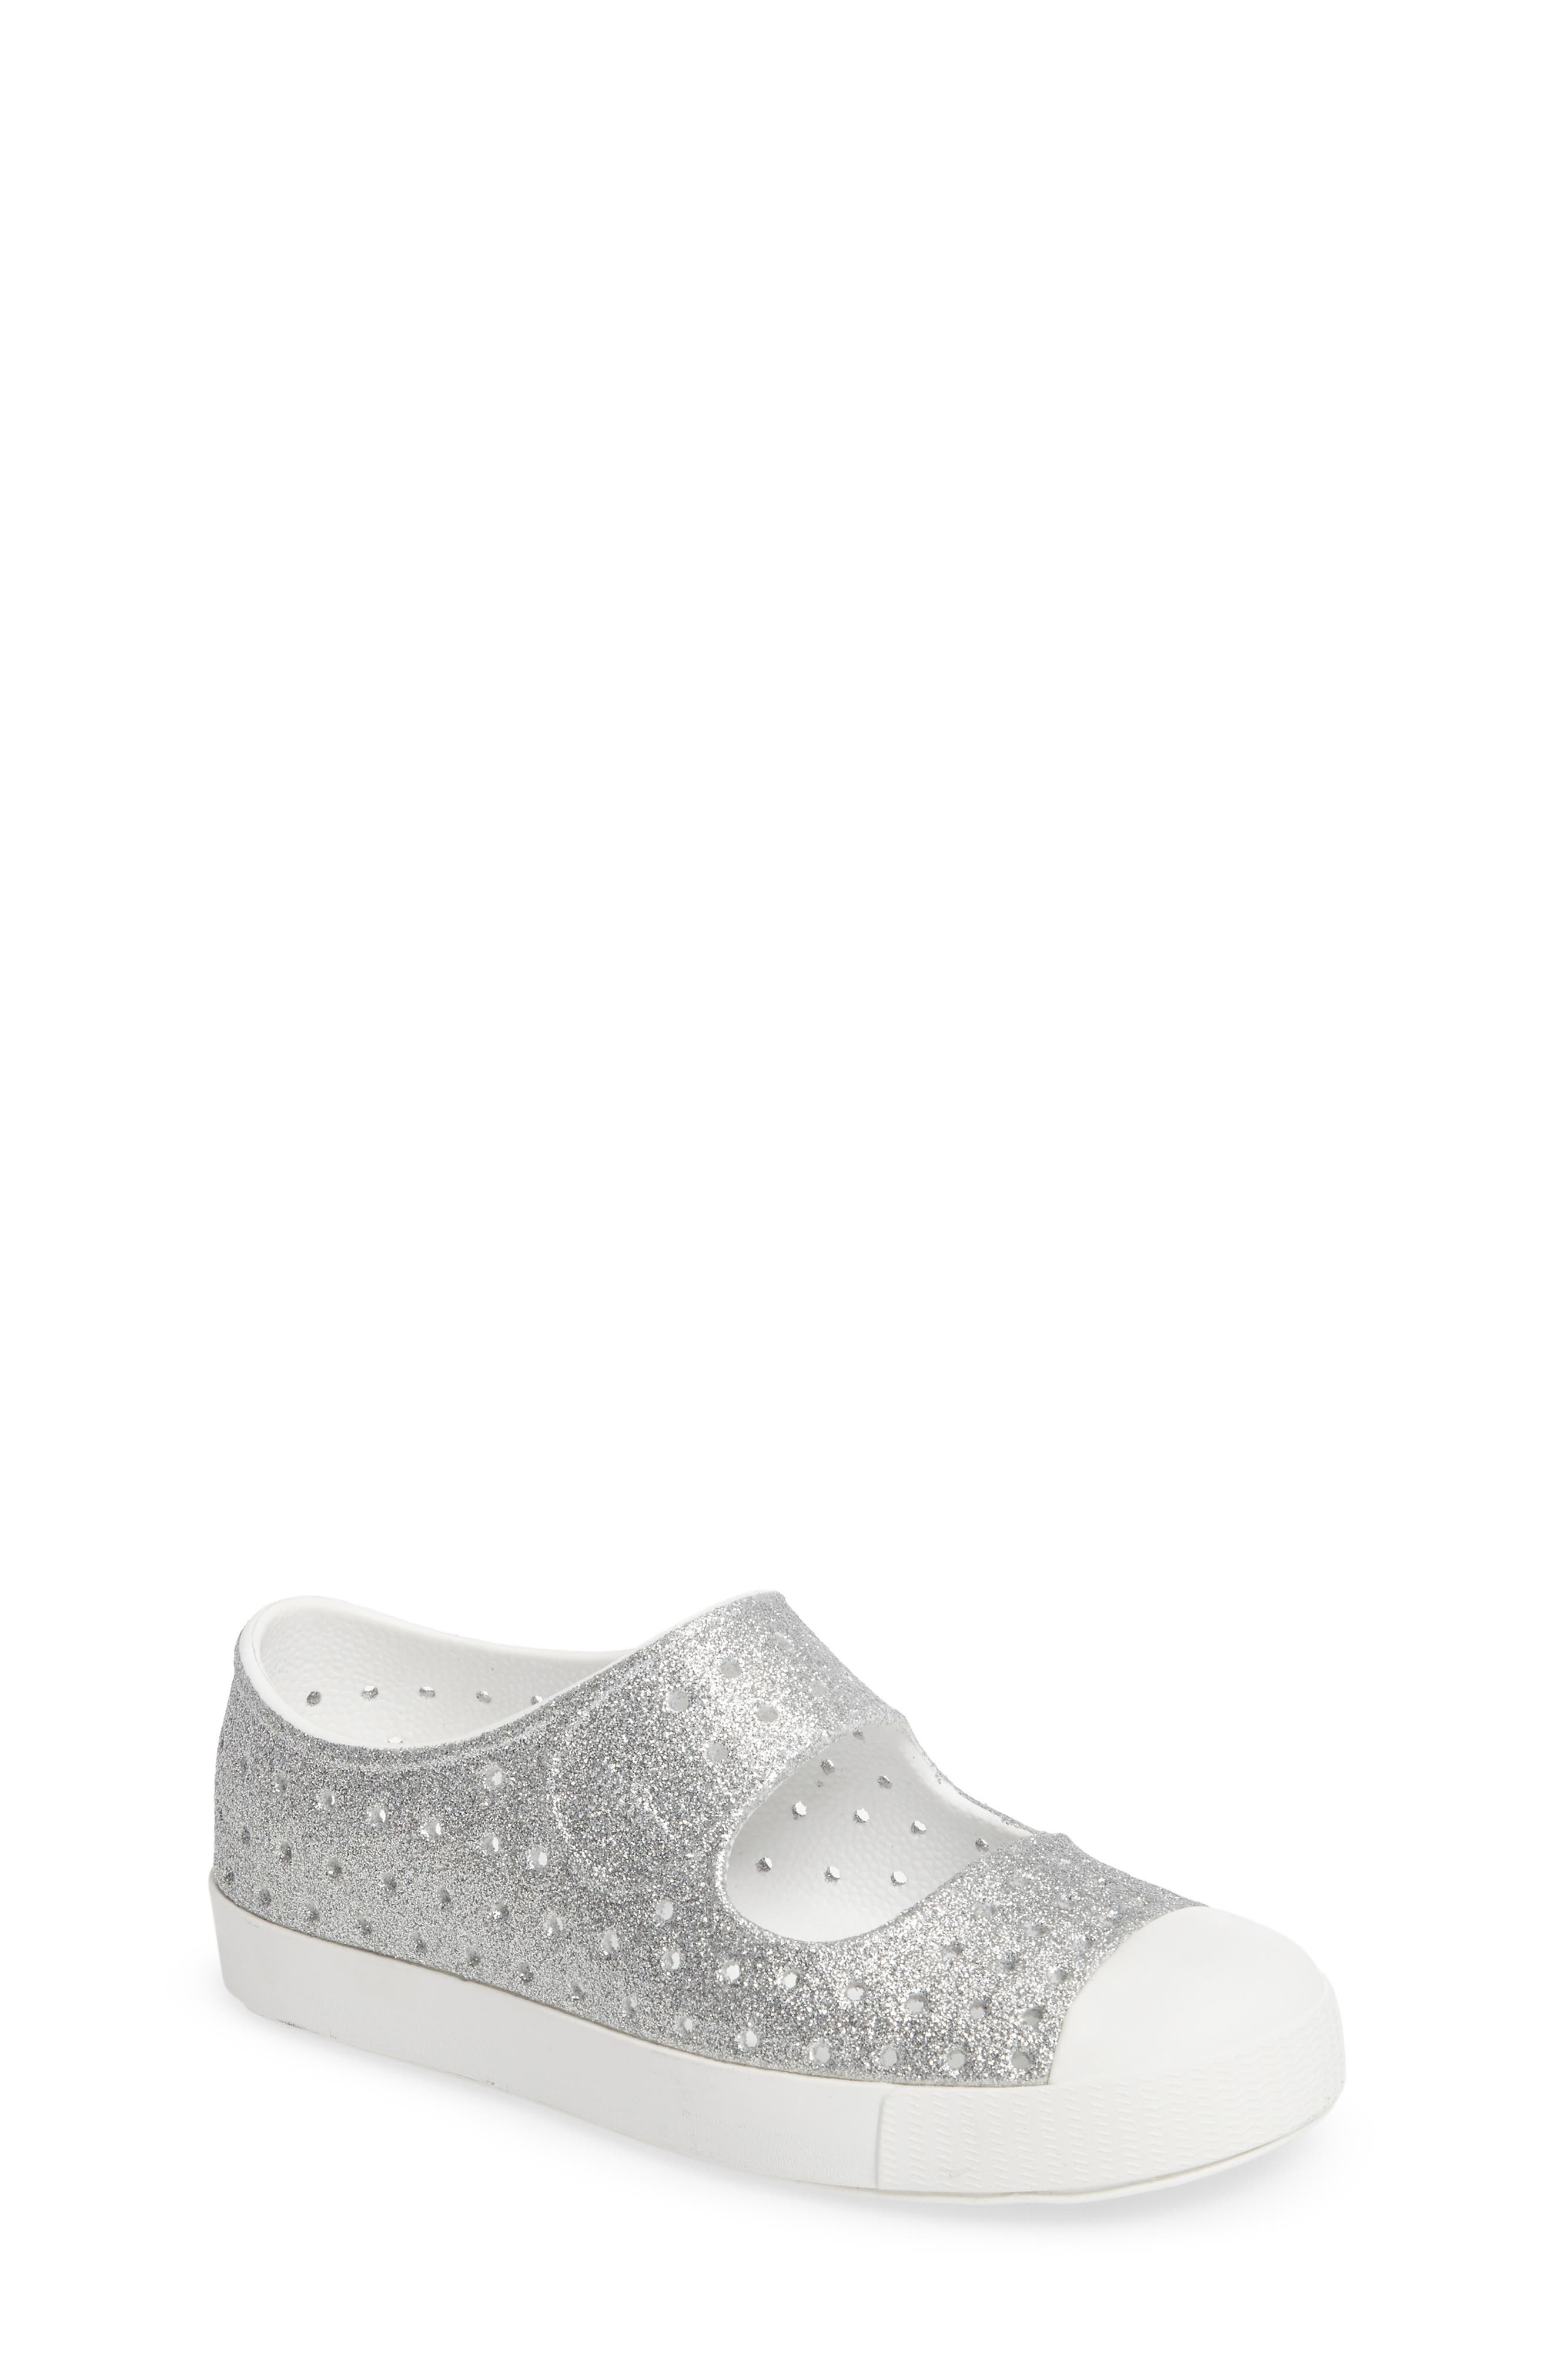 Alternate Image 1 Selected - Native Shoes Juniper Bling Perforated Mary Jane (Baby, Walker, Toddler & Little Kid)